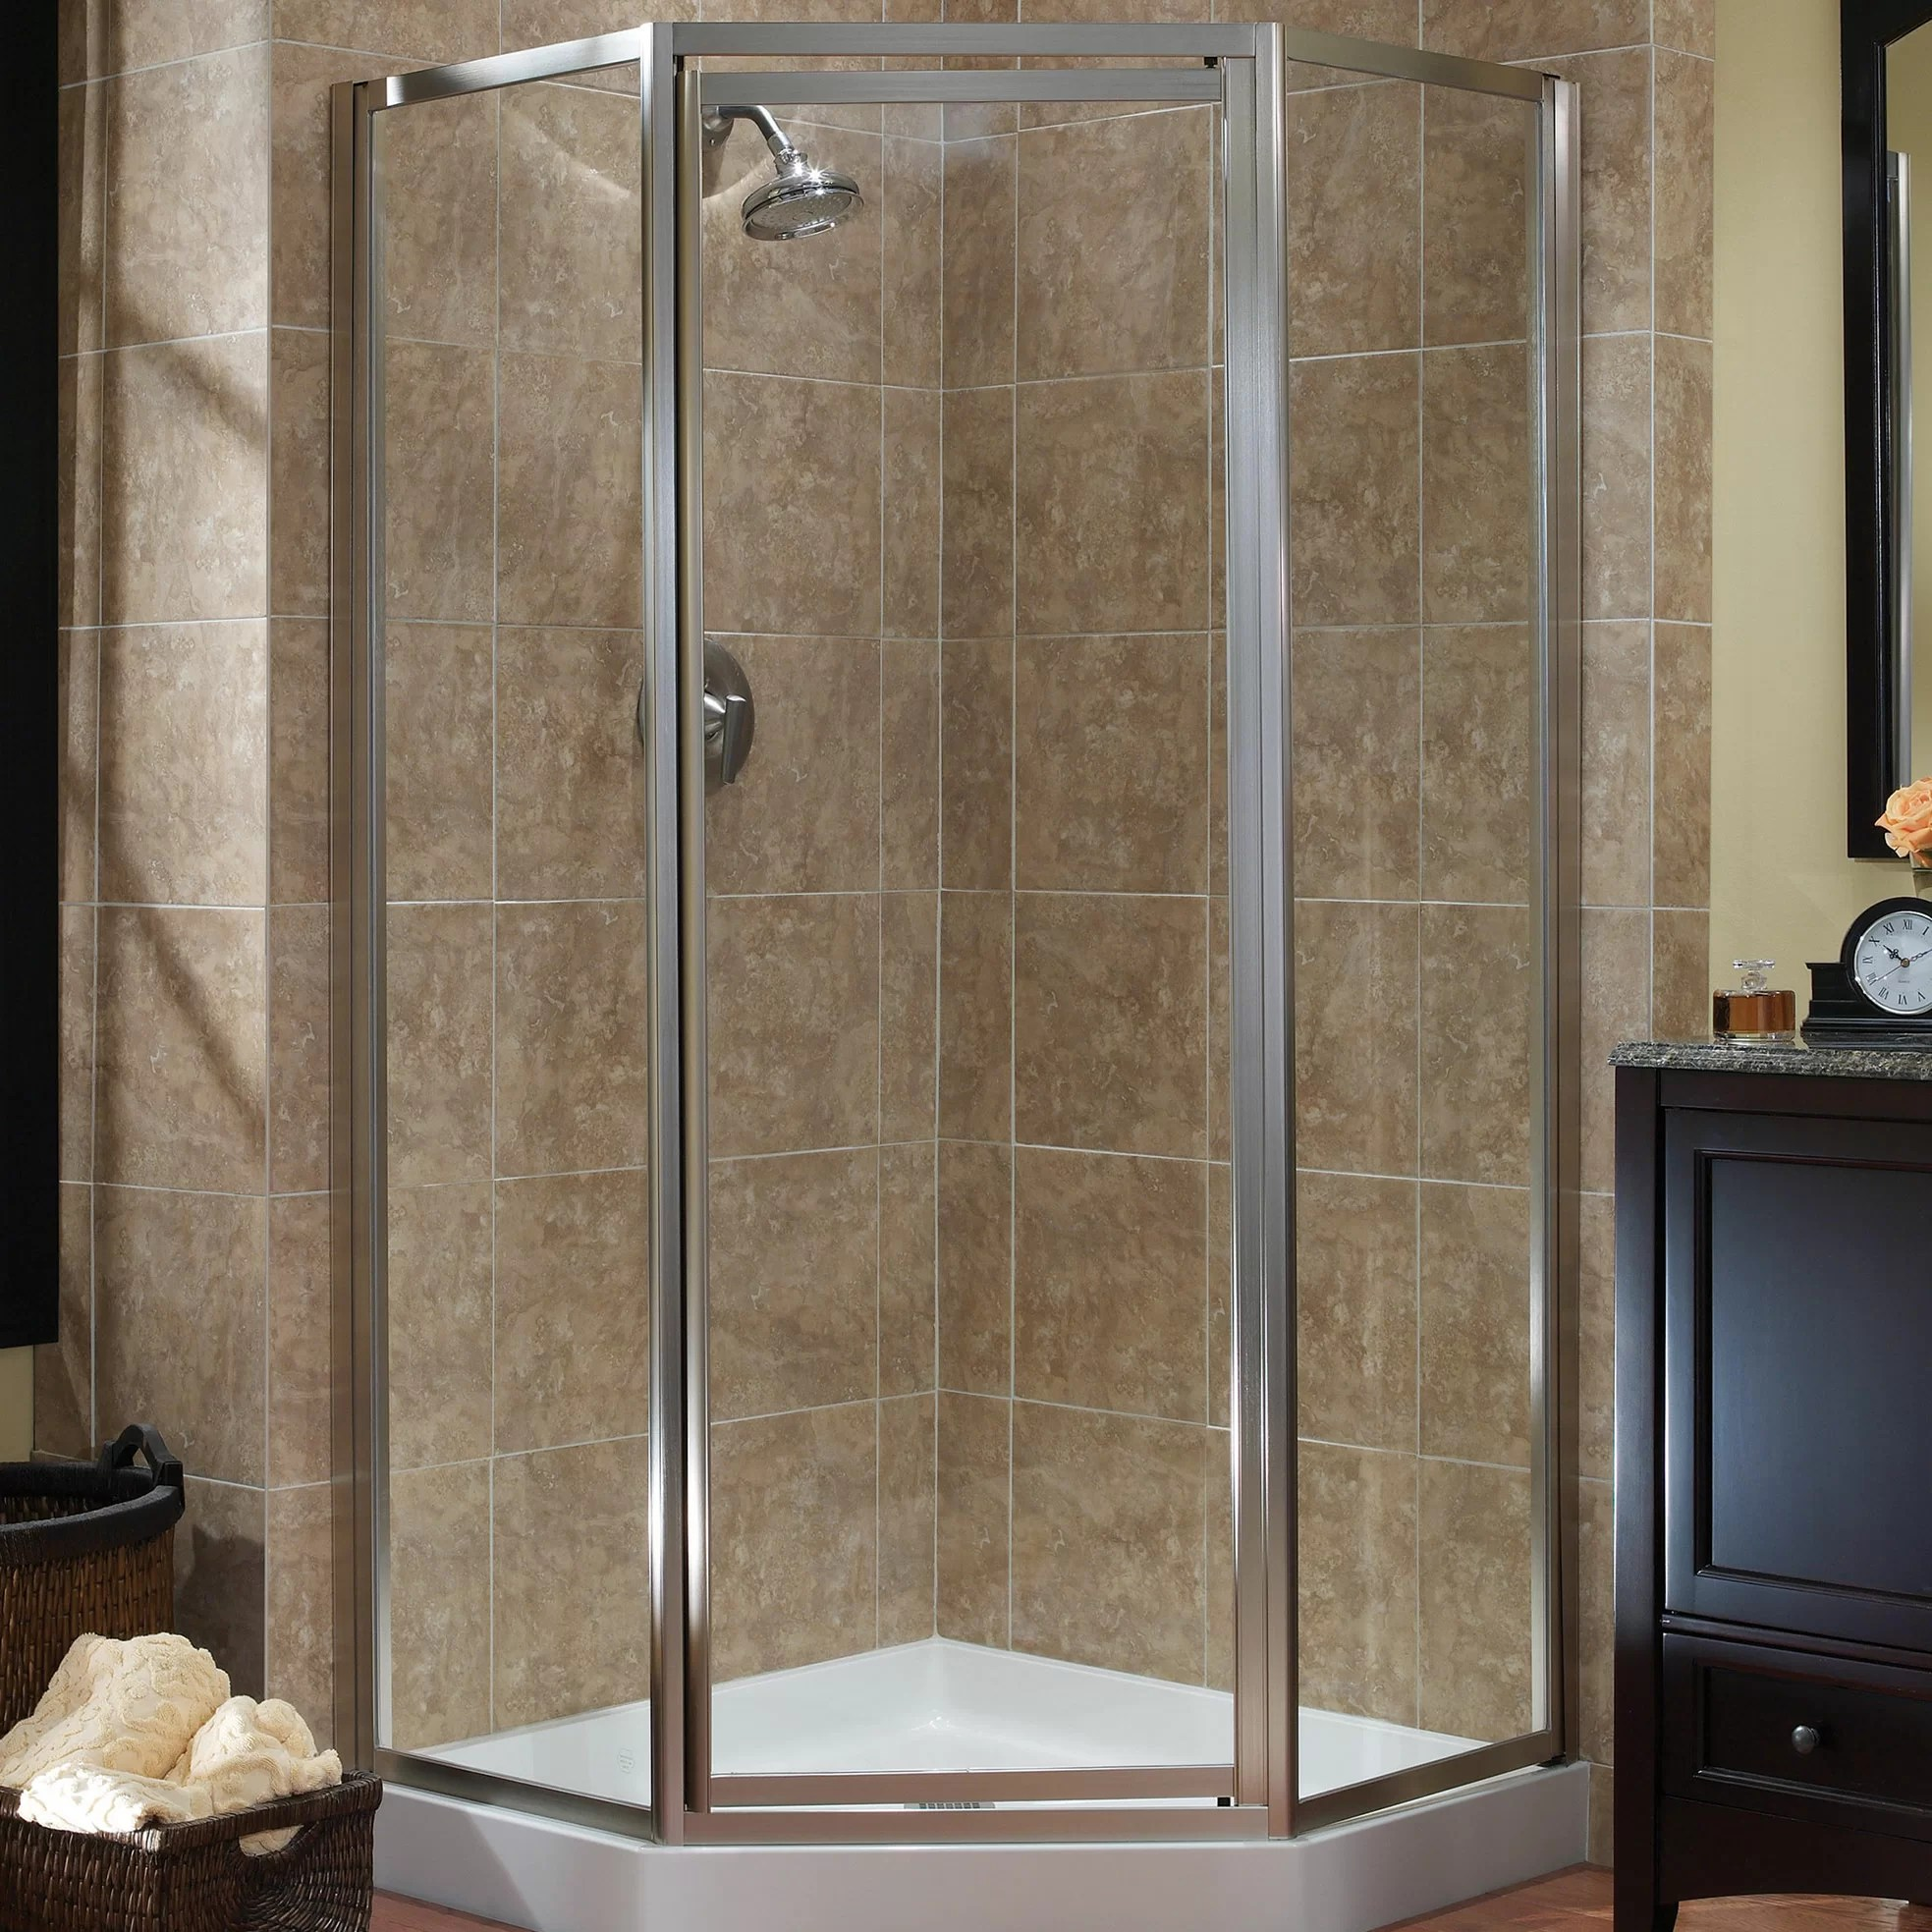 Chase 0 37 X 70 Neo Angle Shower Enclosure